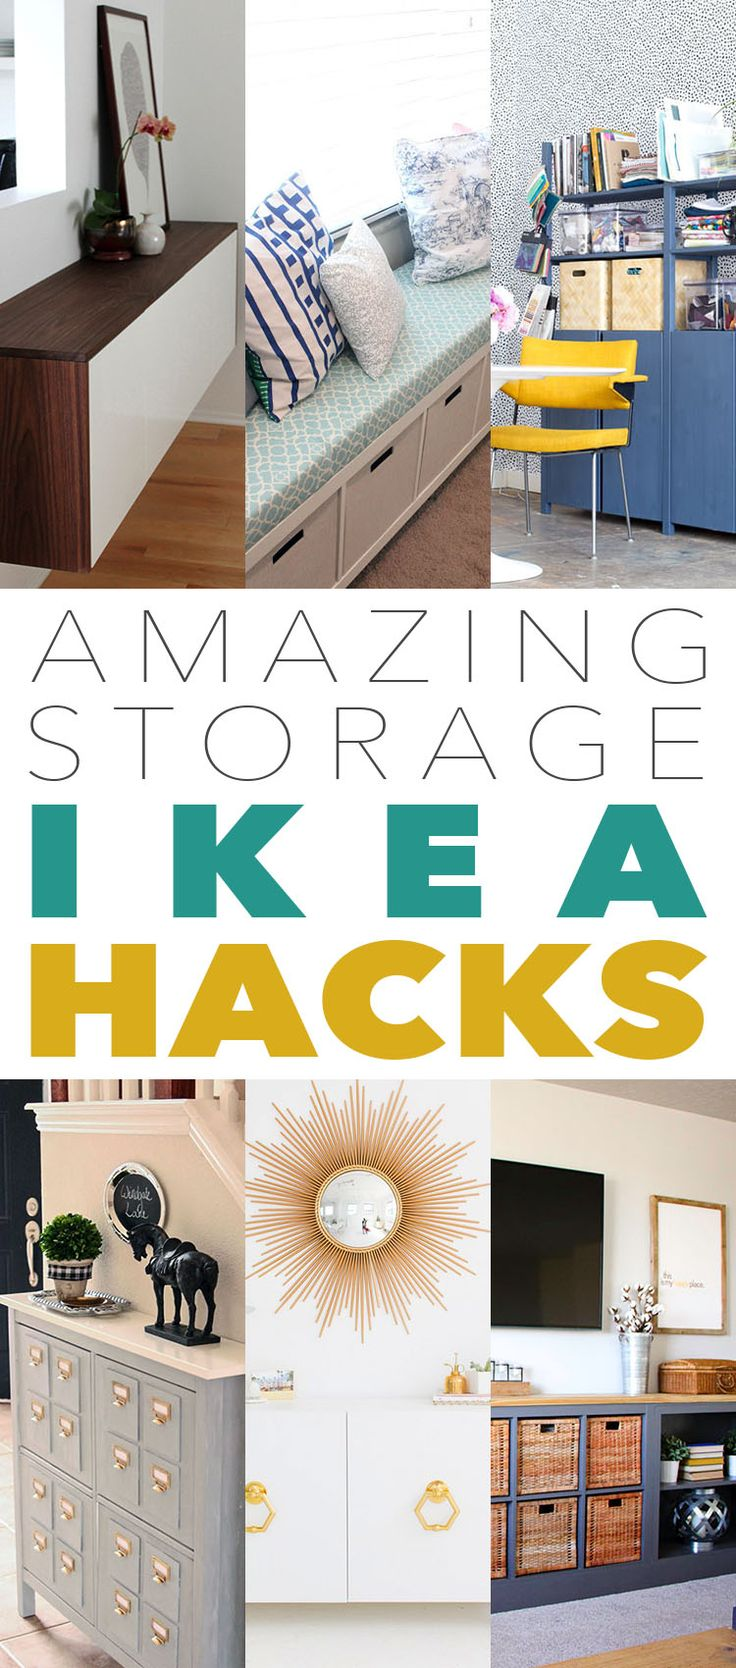 Today we are going to explore some really amazing Storage IKEA Hacks.  So if you need some fun ideas on where to store in style…check this collection out.  From Window Benches to Bar Carts…there is something here for everyone.  The best thing about all of these DIYS is that they can all be made in …